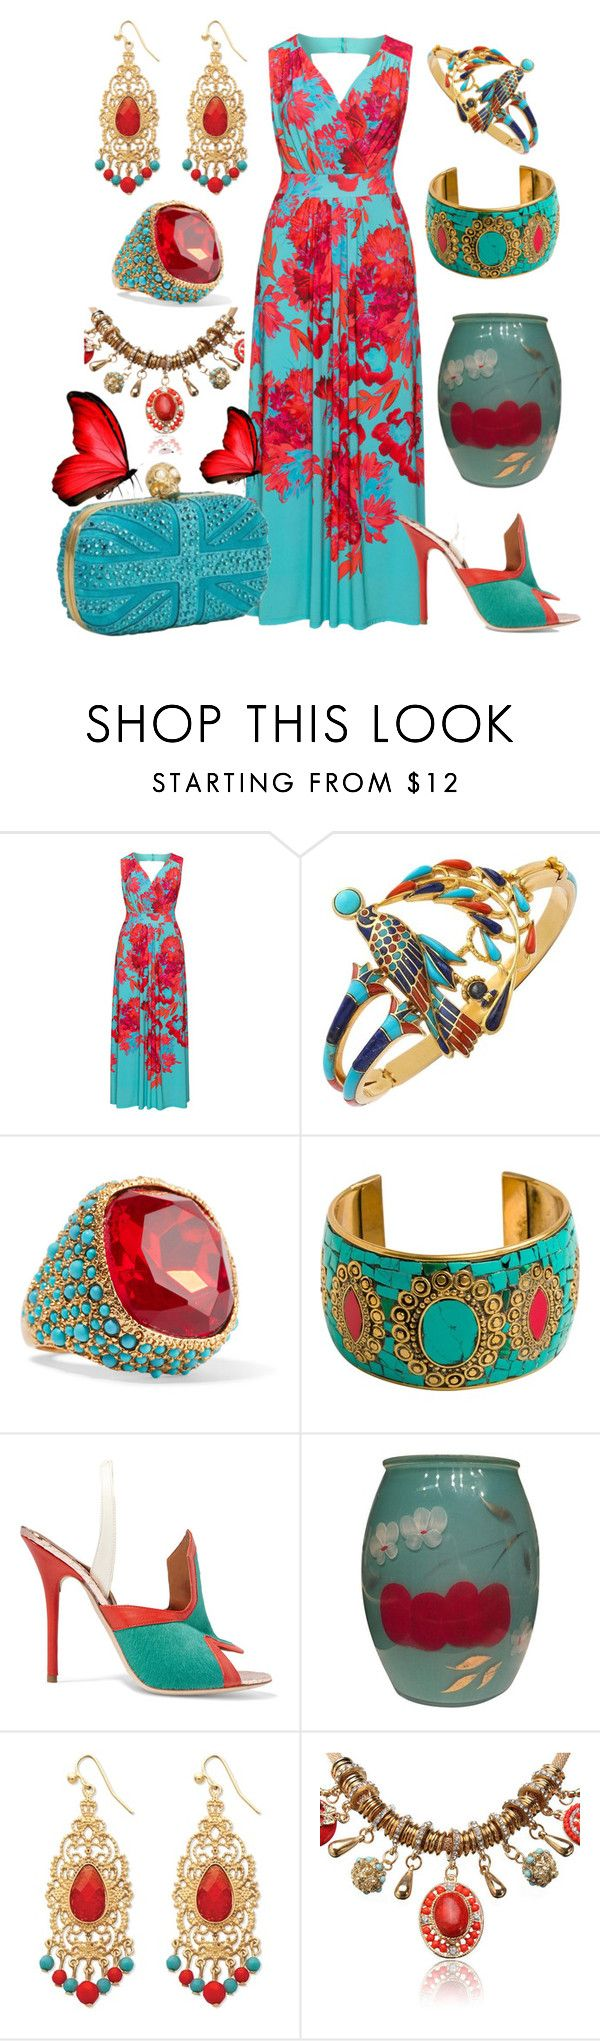 """In Vivid View"" by yournightnurse ❤ liked on Polyvore featuring navabi, Kenneth Jay Lane, Zad, Malone Souliers, Palm Beach Jewelry and Alexander McQueen"